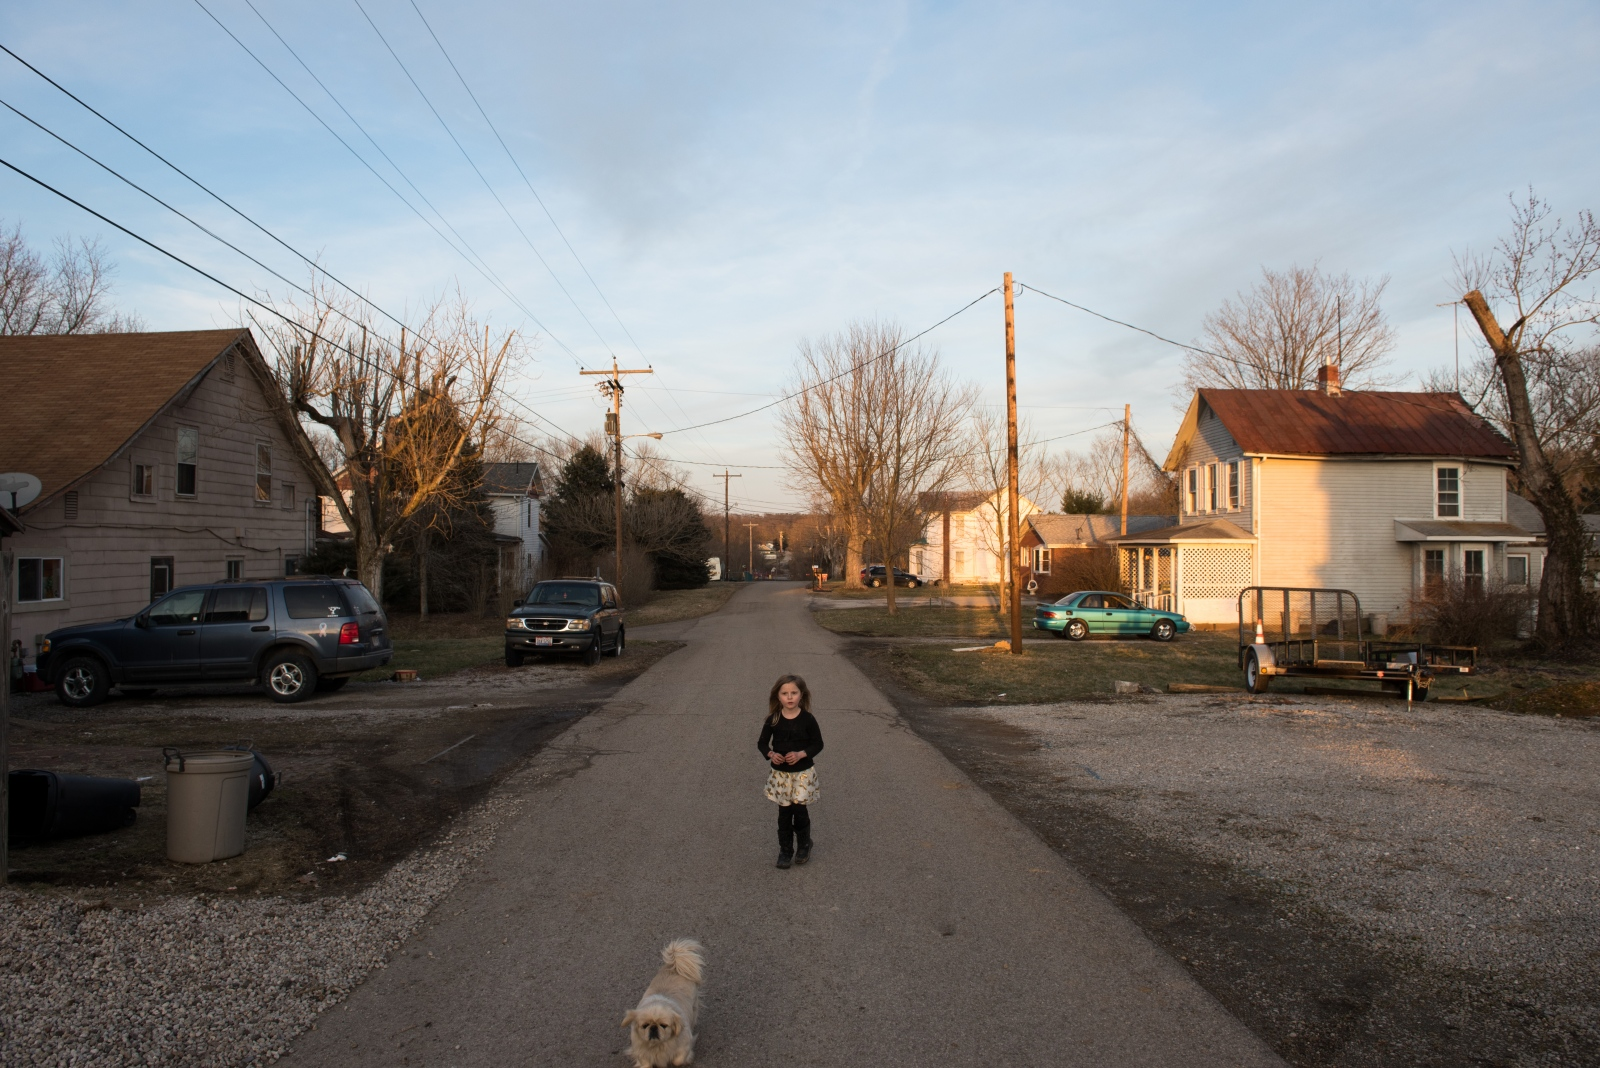 Chloe Harris and her dog walk in the late afternoon light in Coolville, Ohio.